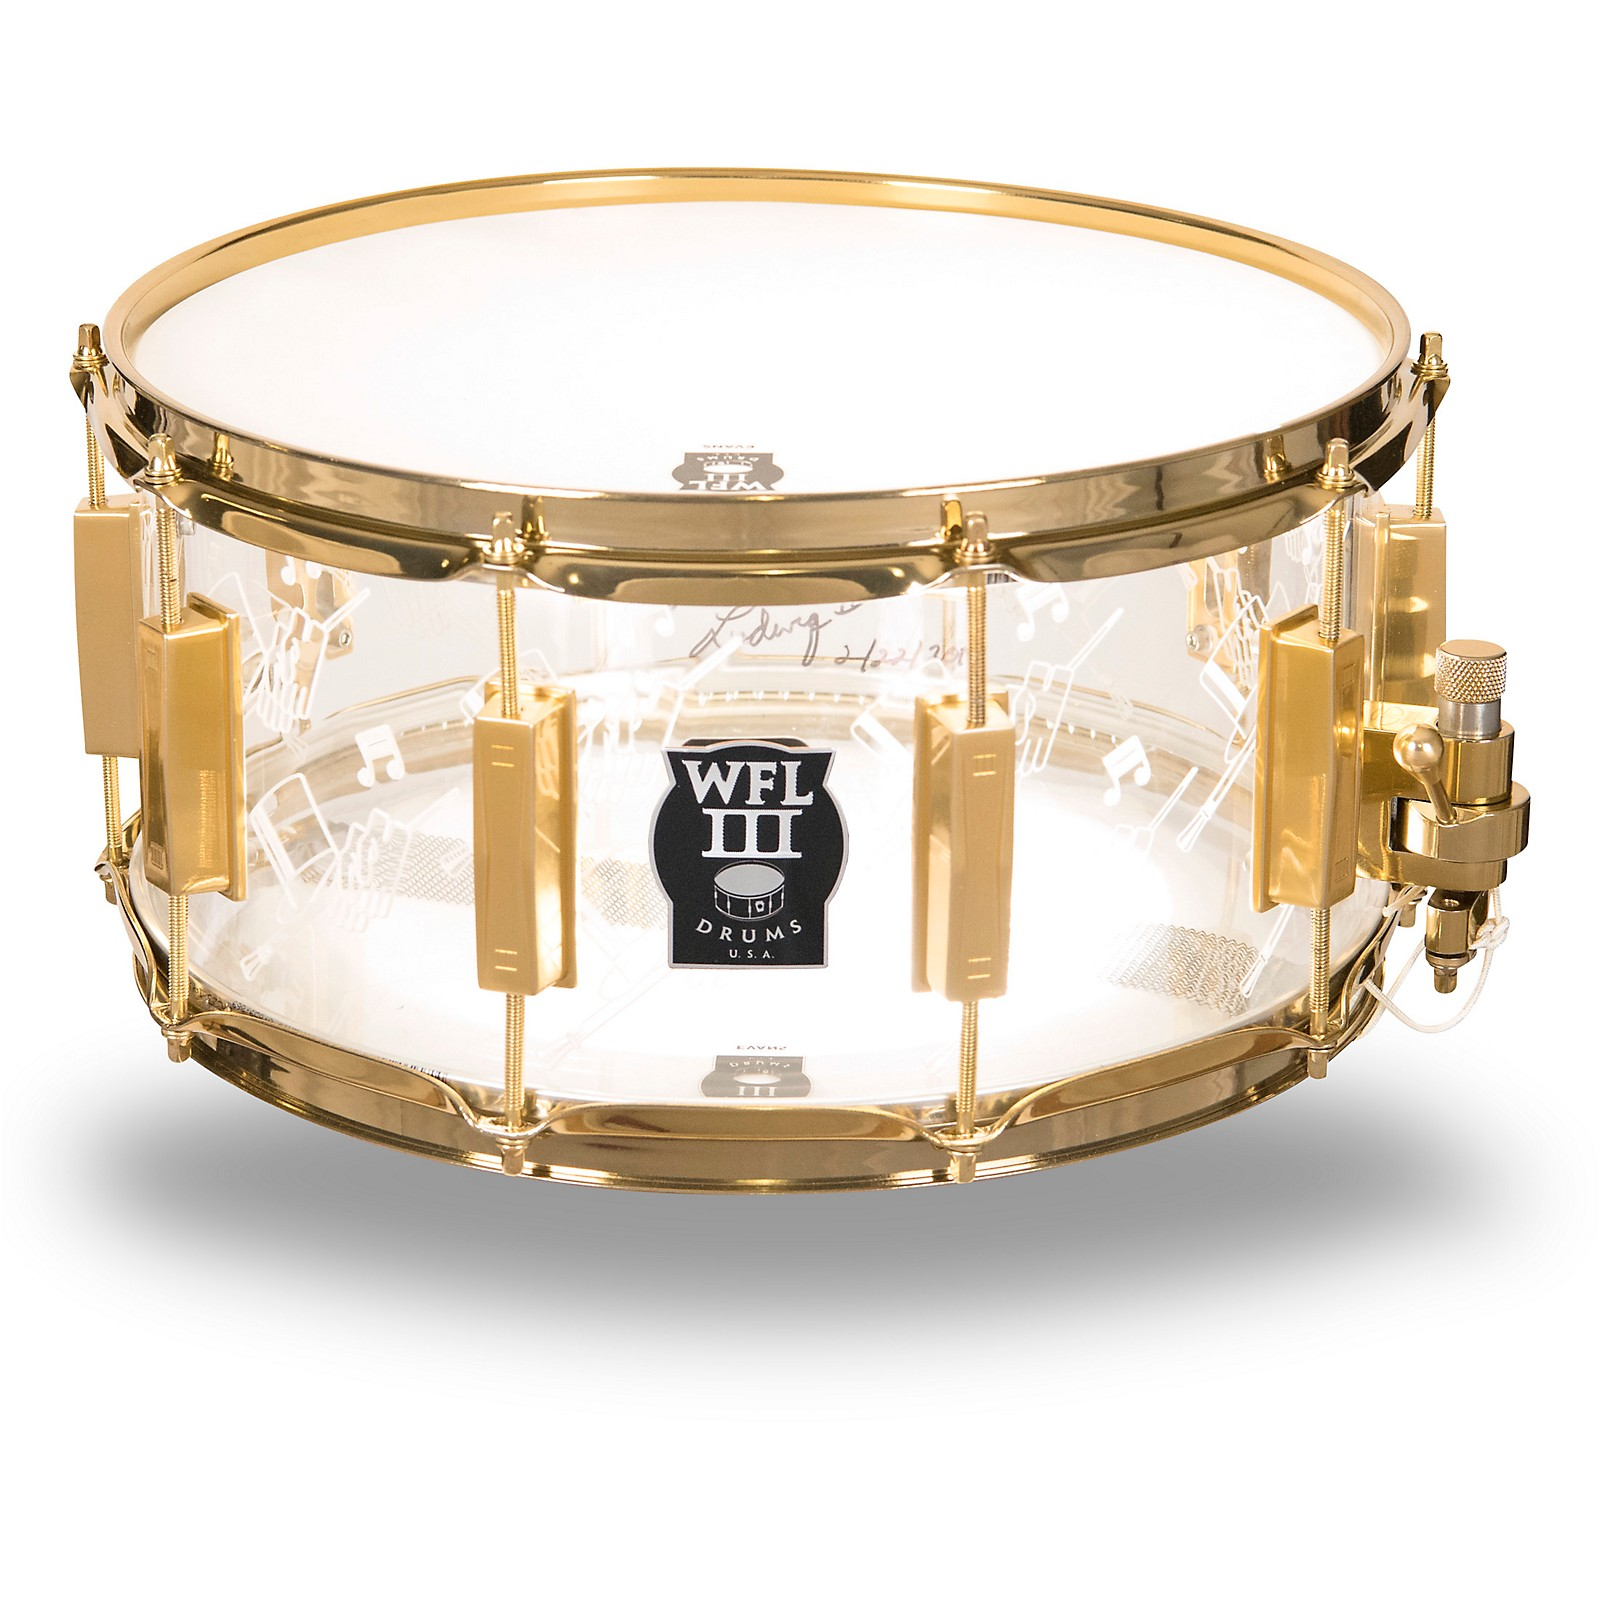 WFLIII Drums Top Hat and Cane Collector's Acrylic Snare Drum with Gold Hardware